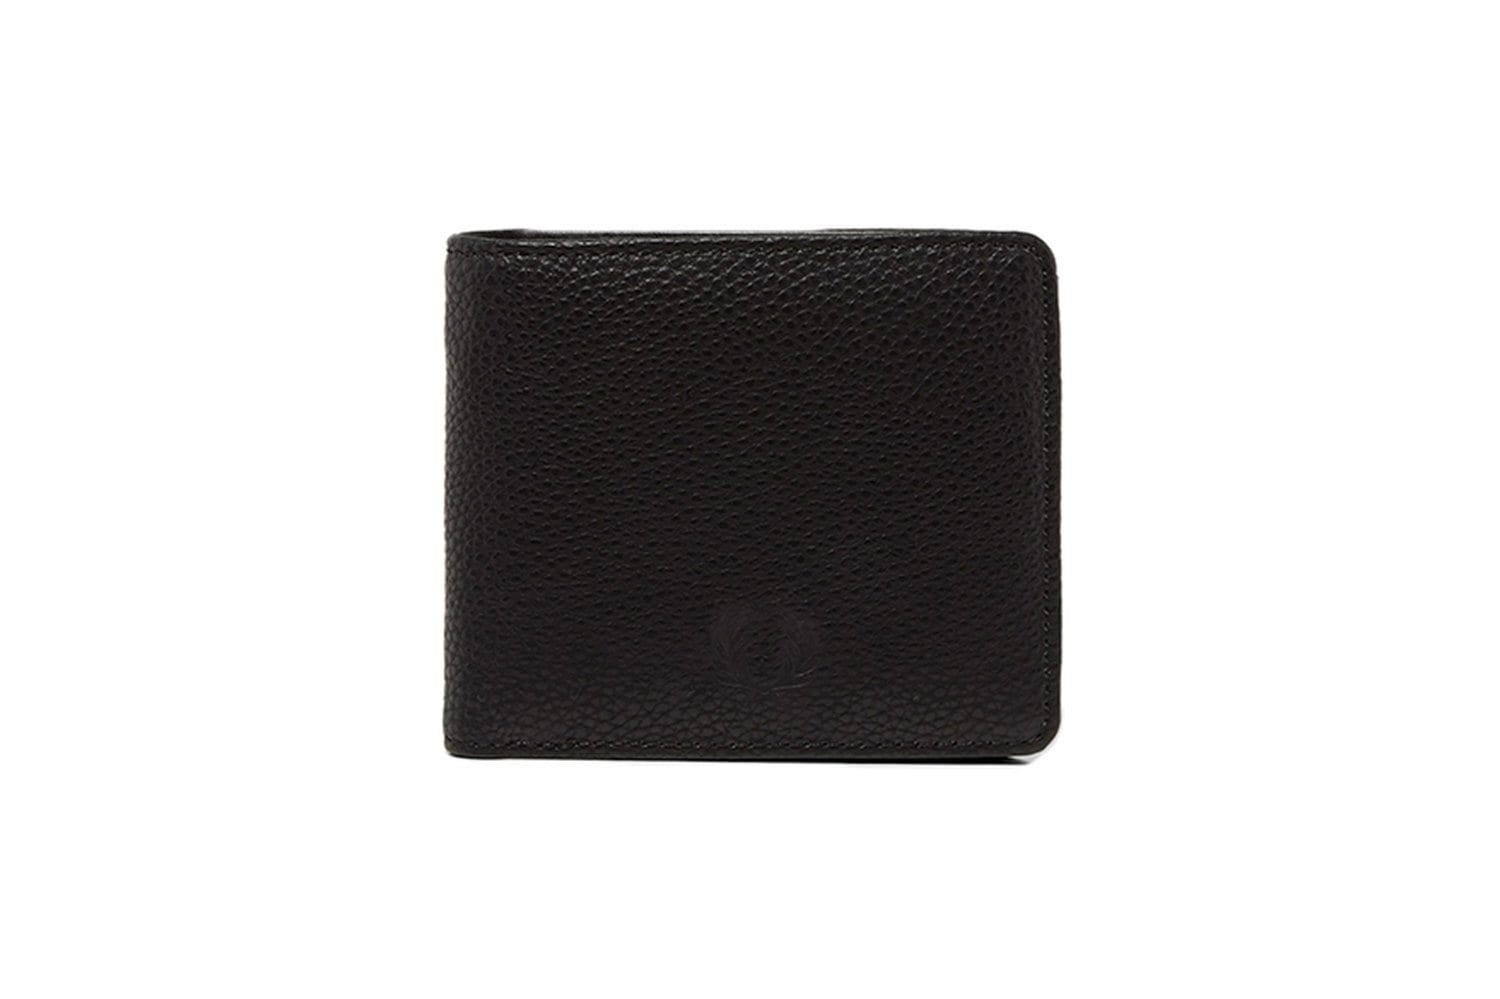 TUMBLED PU BILLFOLD WAL ACCESSORIES FRED PERRY BLACK ONE SIZE